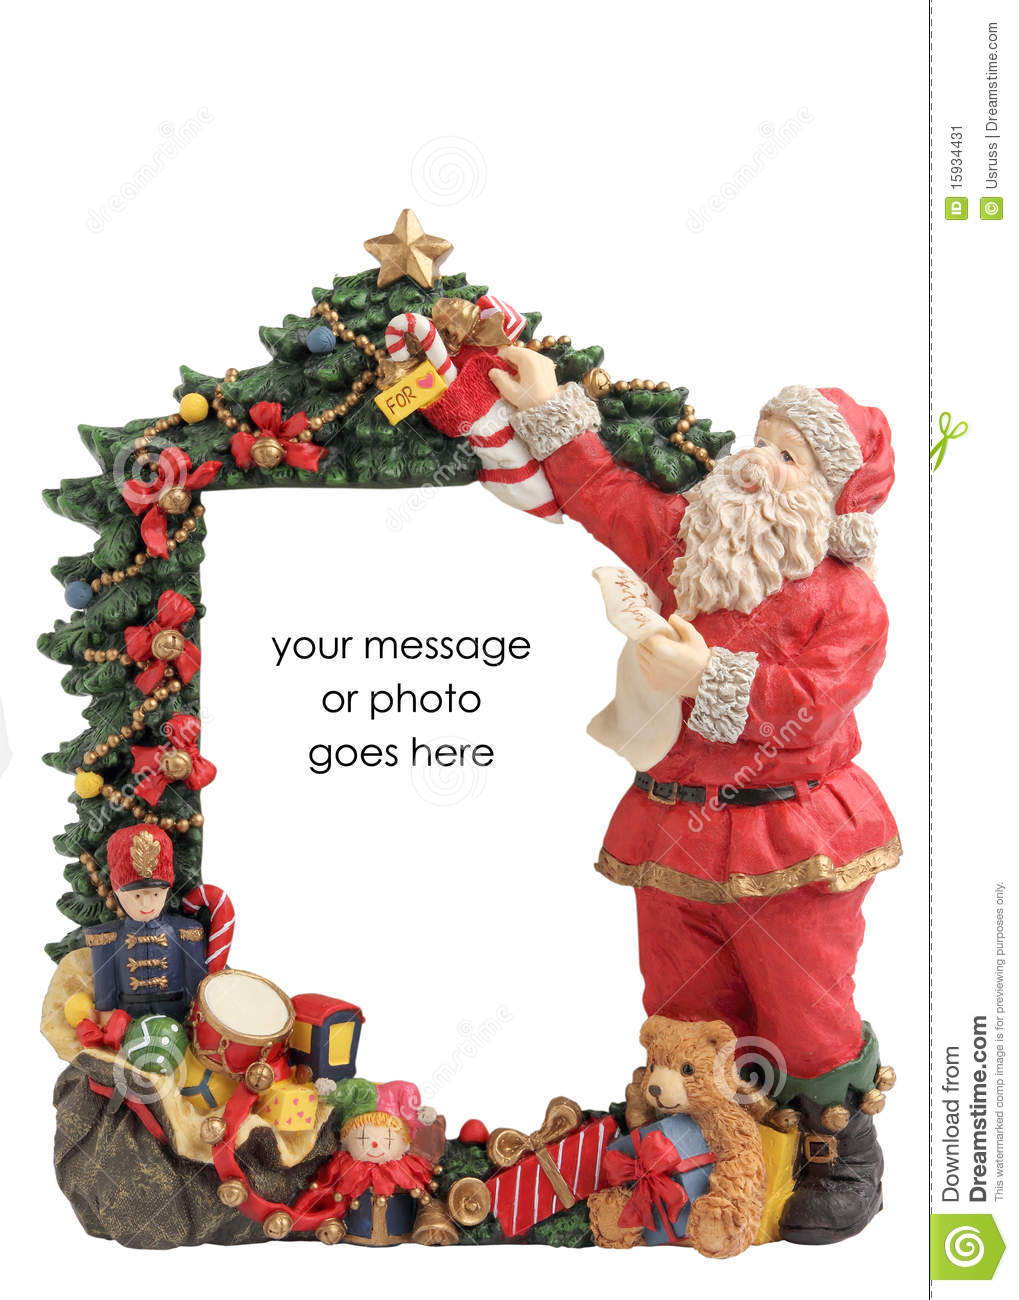 Christmas Frame Border For Inserts. Stock Image - Image of bell ...